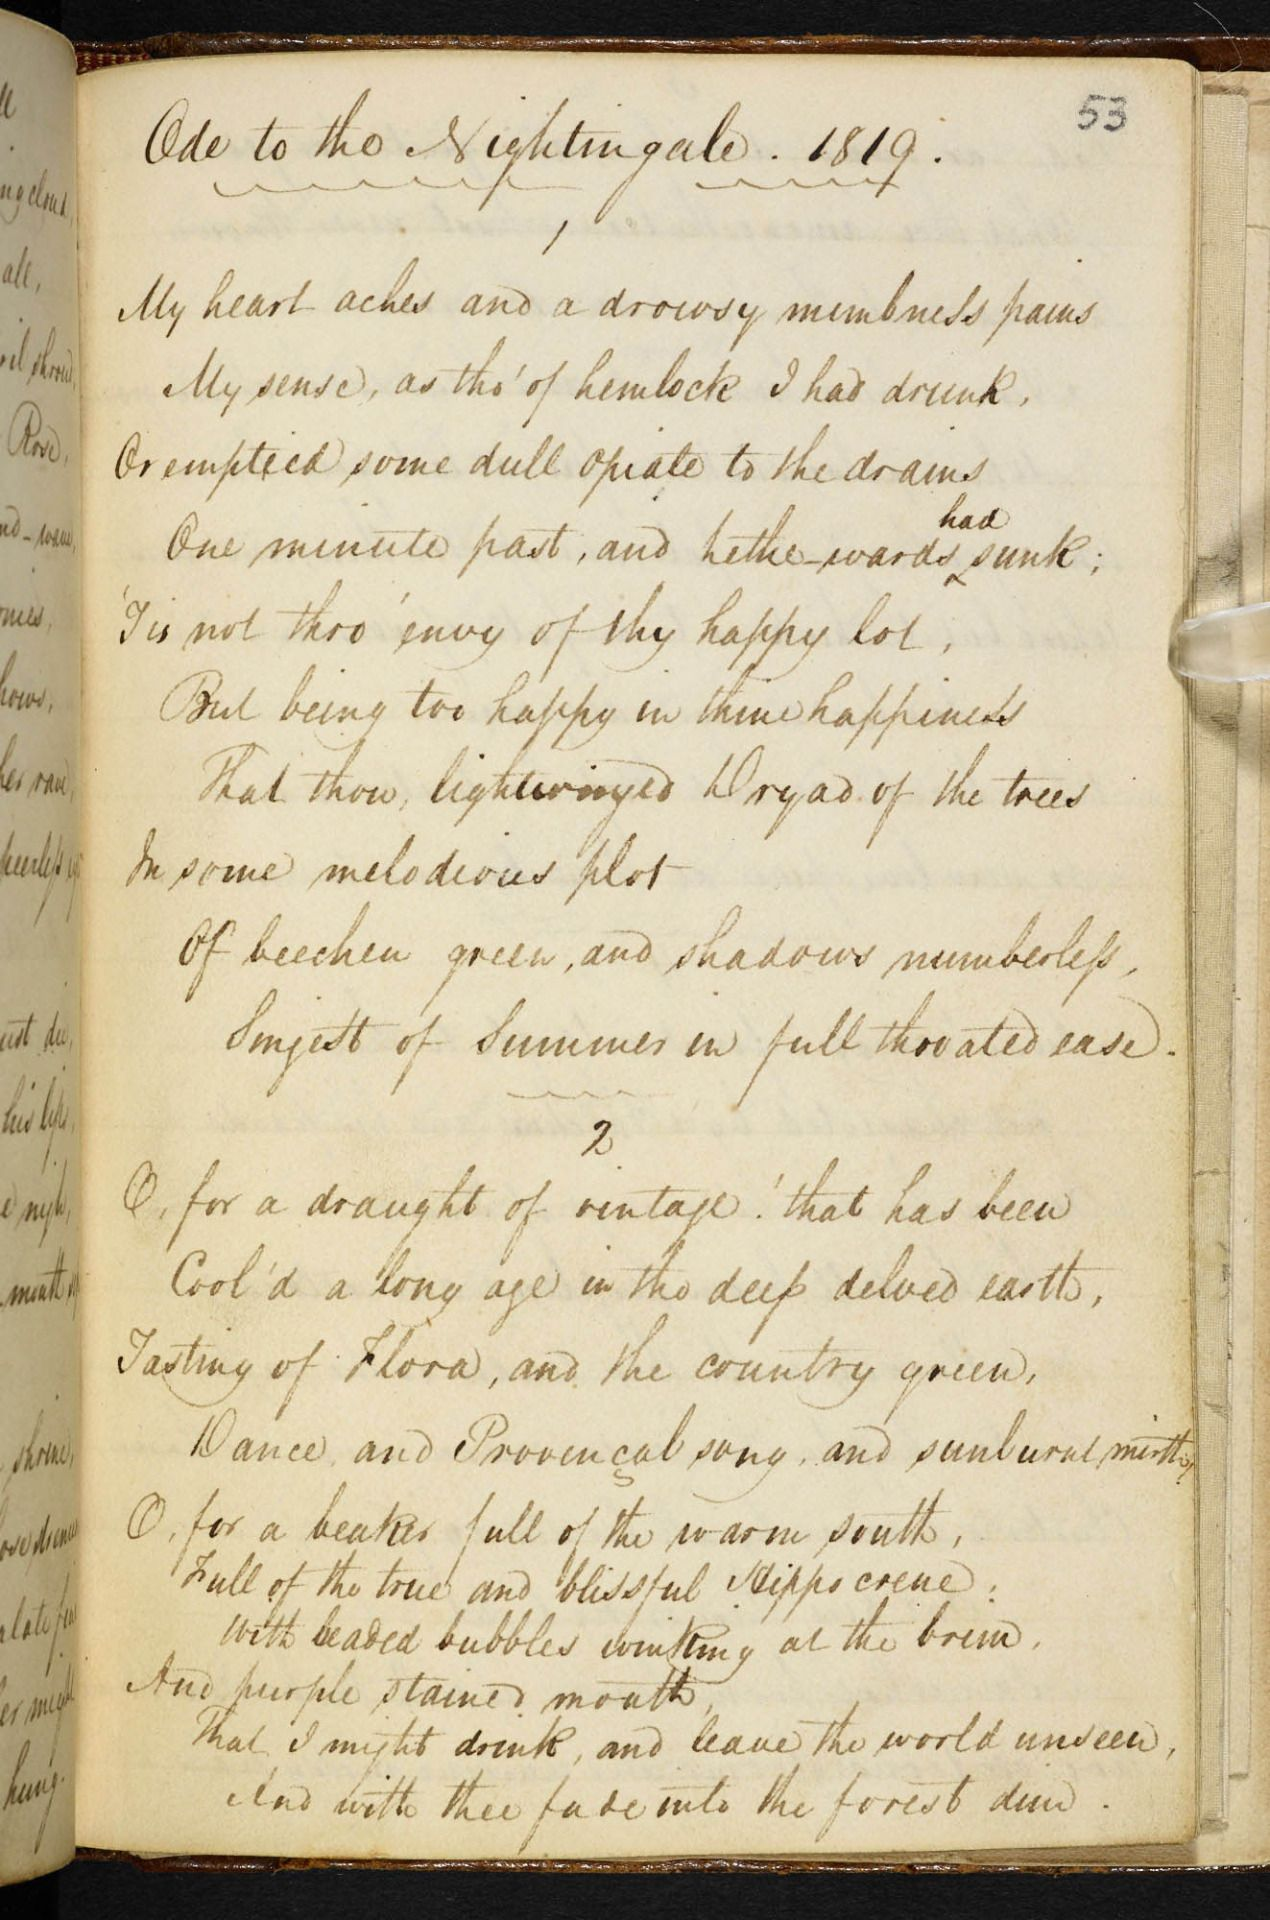 New Post On September At Pemberley John Keat Lettering Poem Ode To Autumn By Keats Appreciation Of The Critical Analysi Pdf